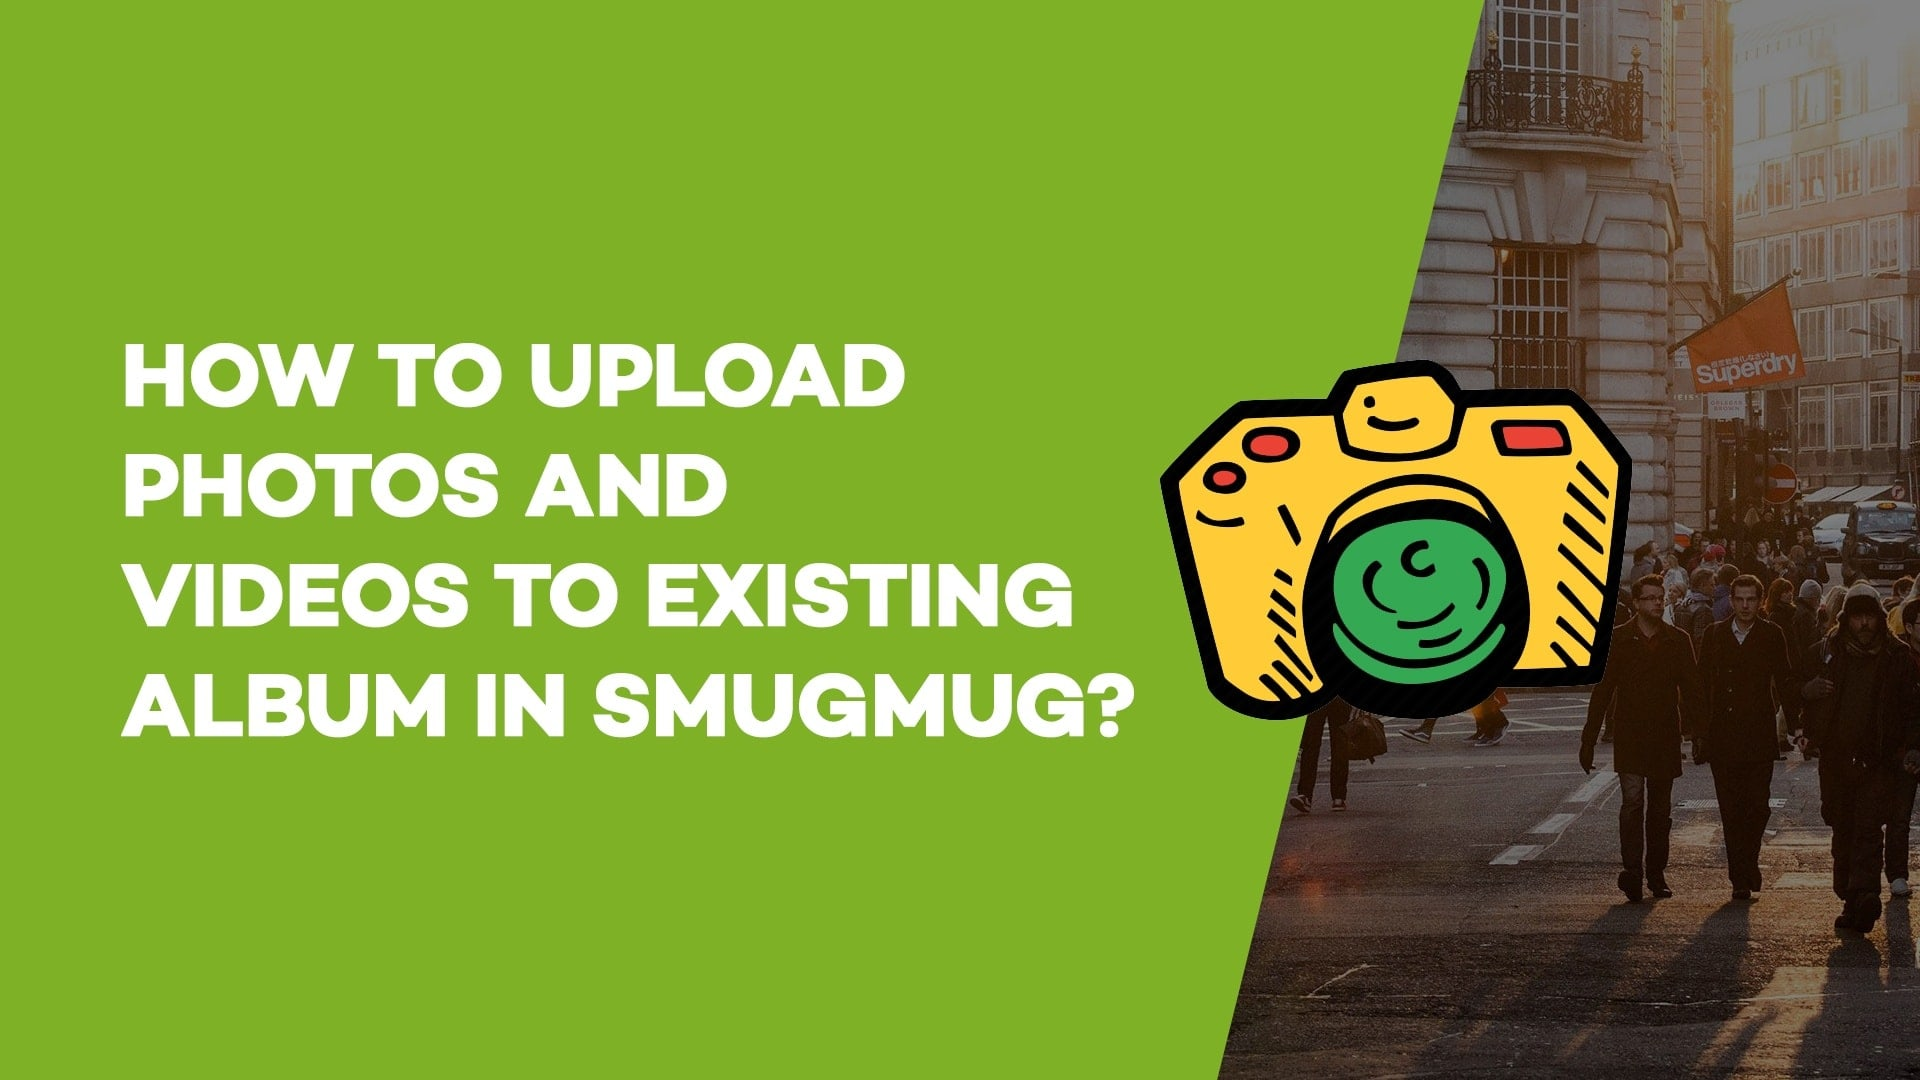 How to upload photos and videos to existing album in SmugMug?